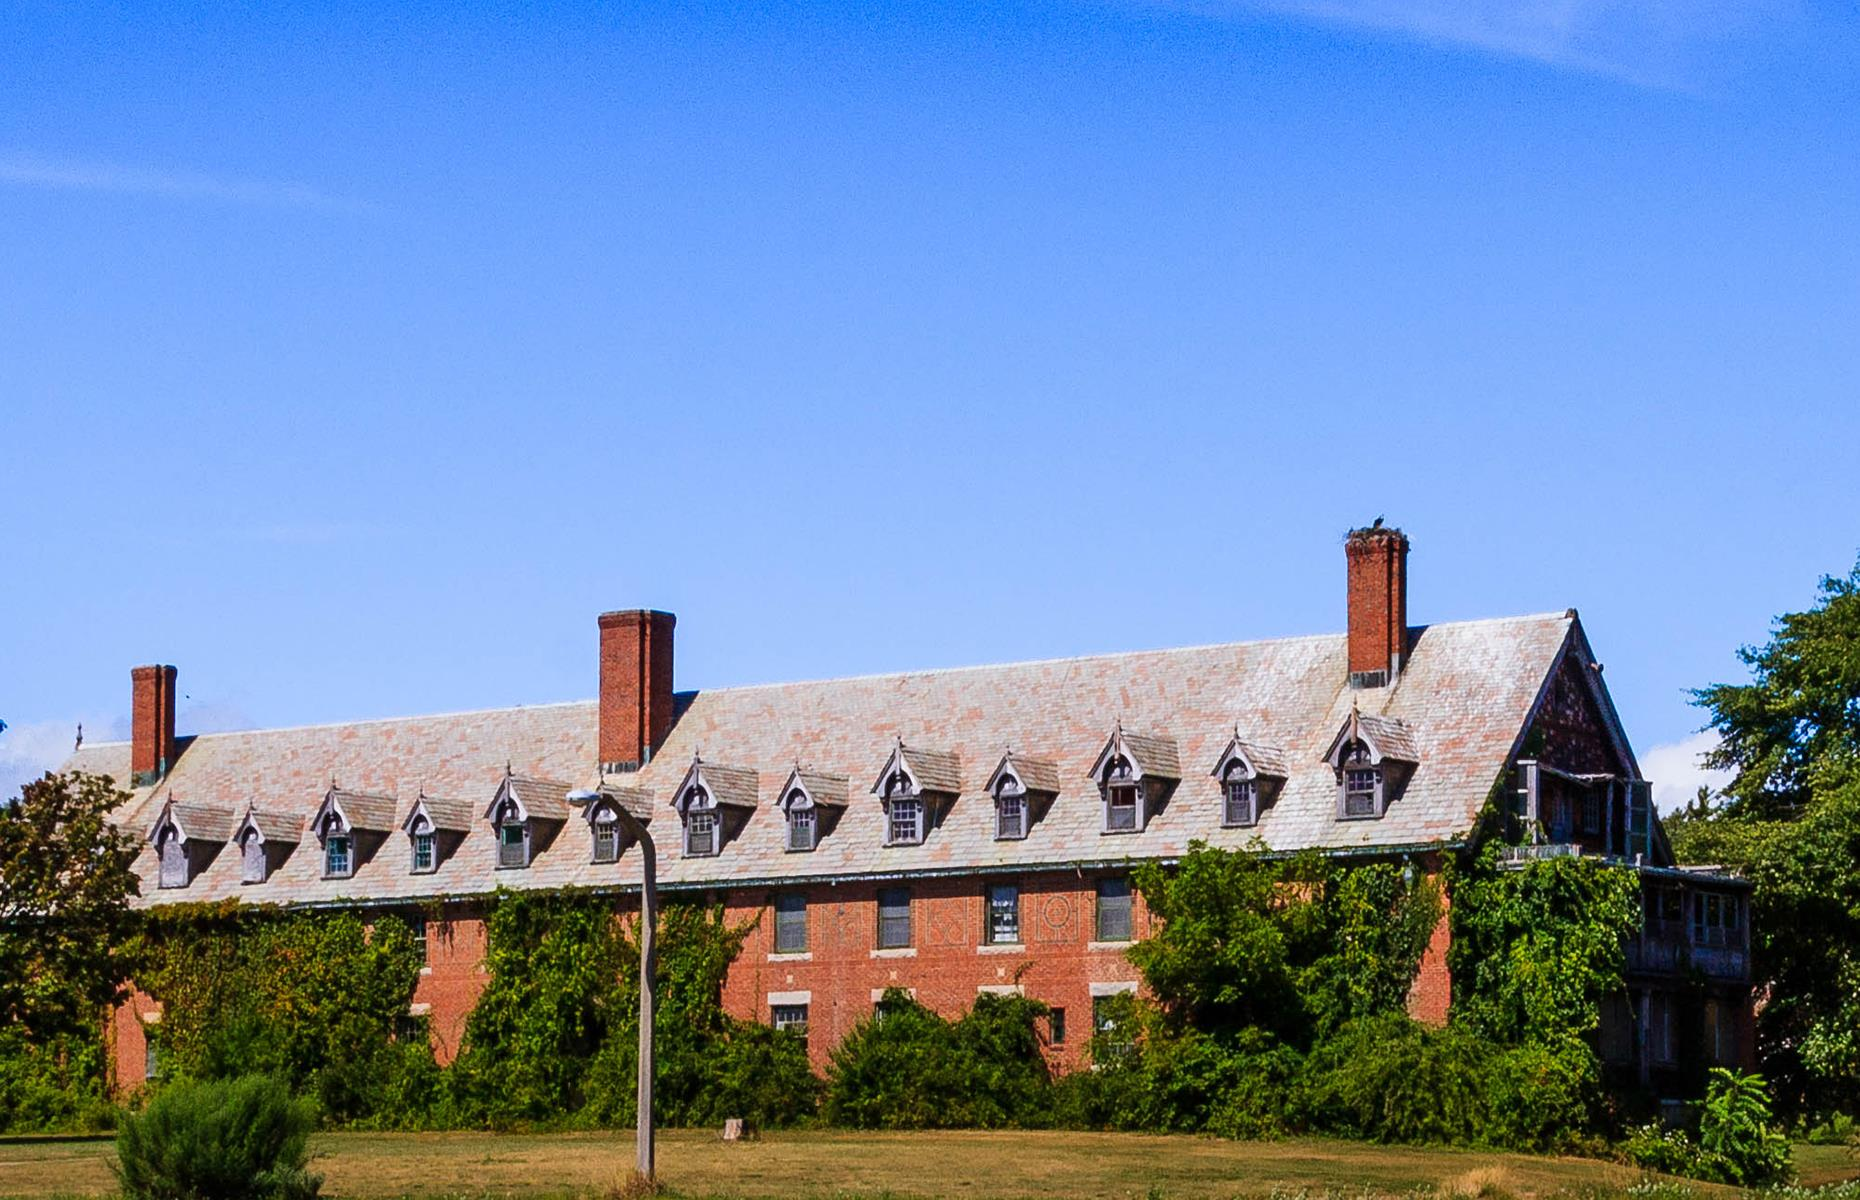 Slide 15 of 101: Today the building still watches over the shore and is within the grounds of the public Seaside State Park. Development plans have circled around the abandoned hospital for years but, as yet, nothing has been decided, so the sanatorium remains eerie and deserted.